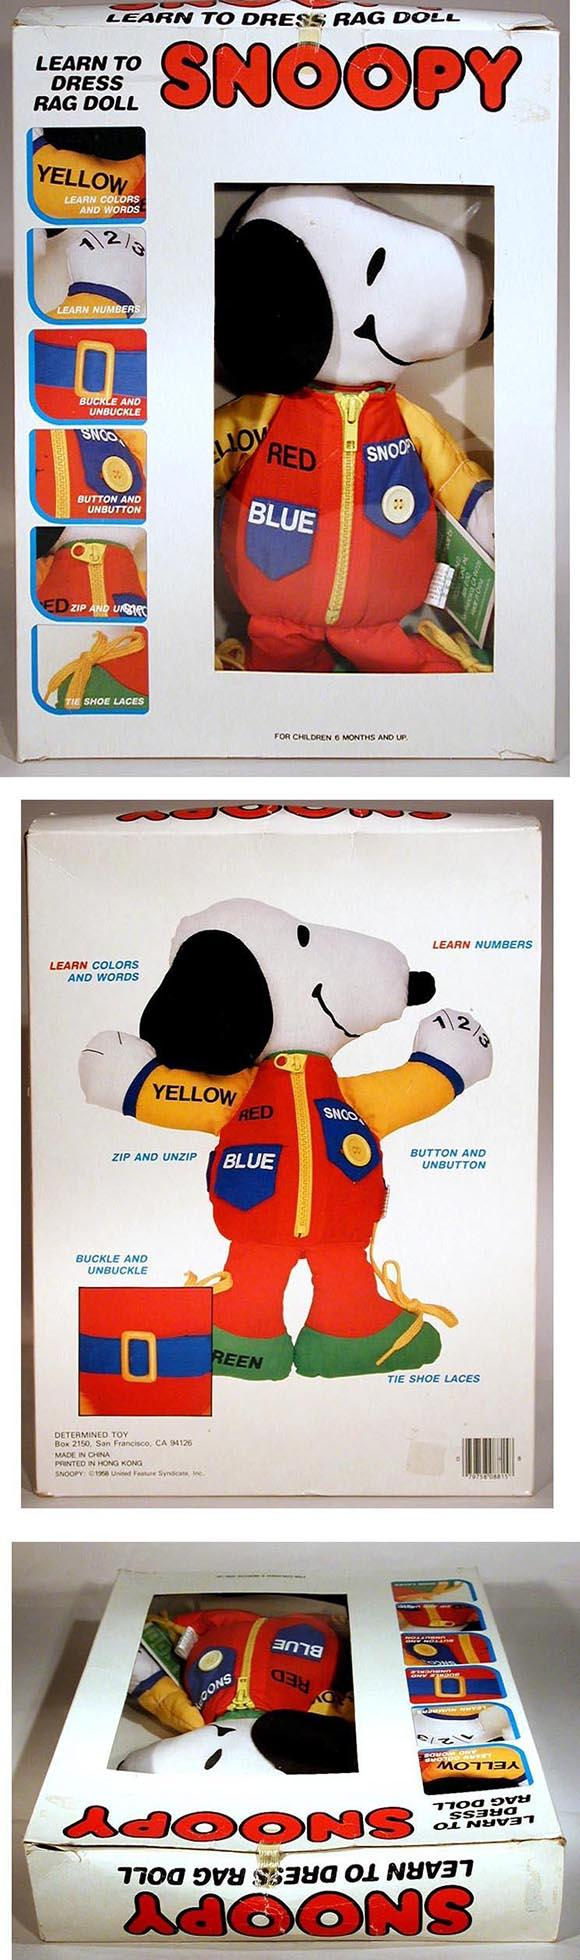 c.1980 Learn To Dress Snoopy Rag Doll in Original Box